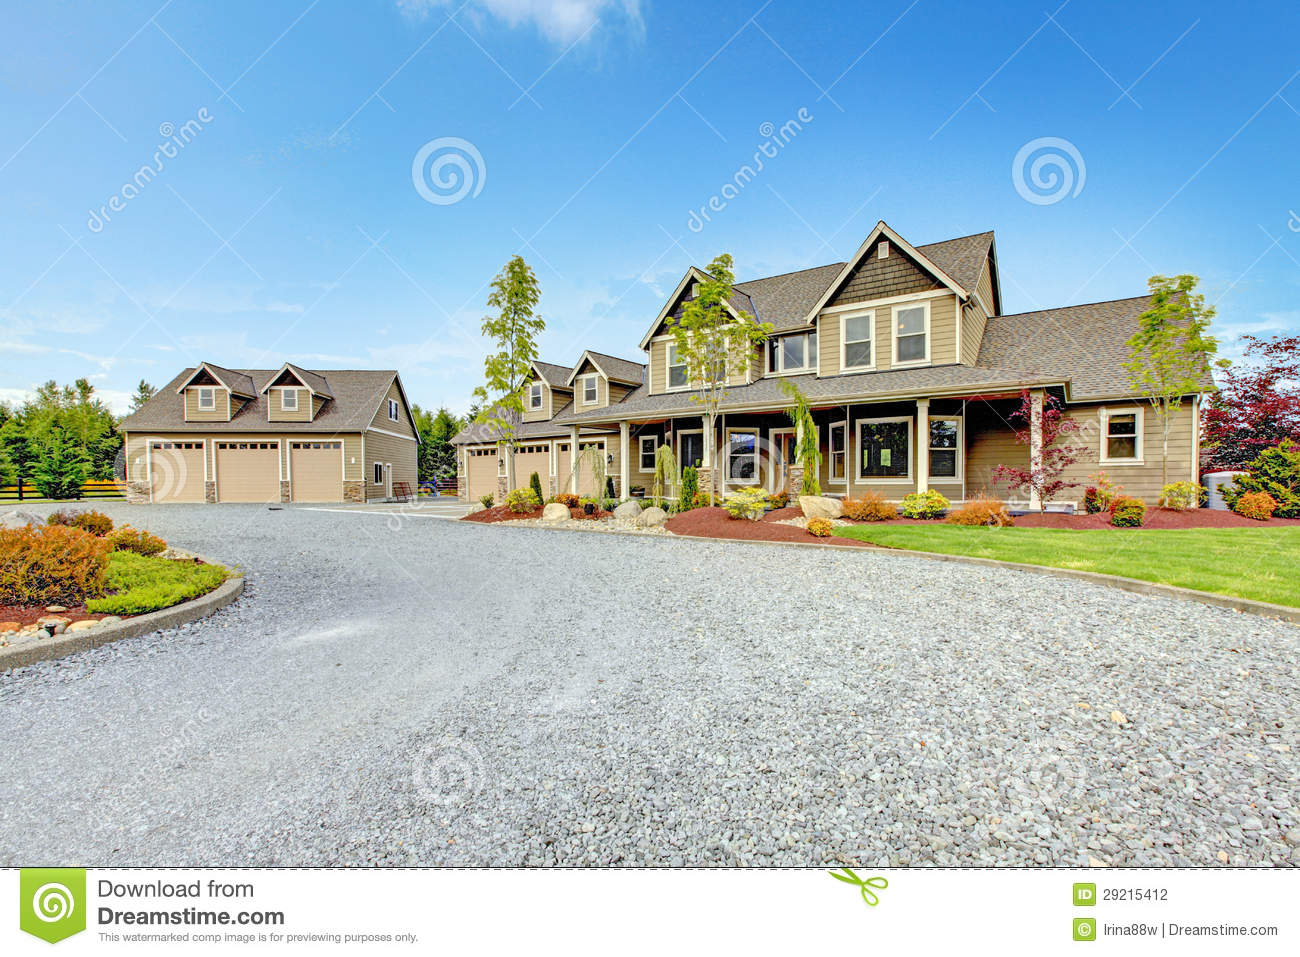 Large Farm Country House With Gravel Driveway And Green